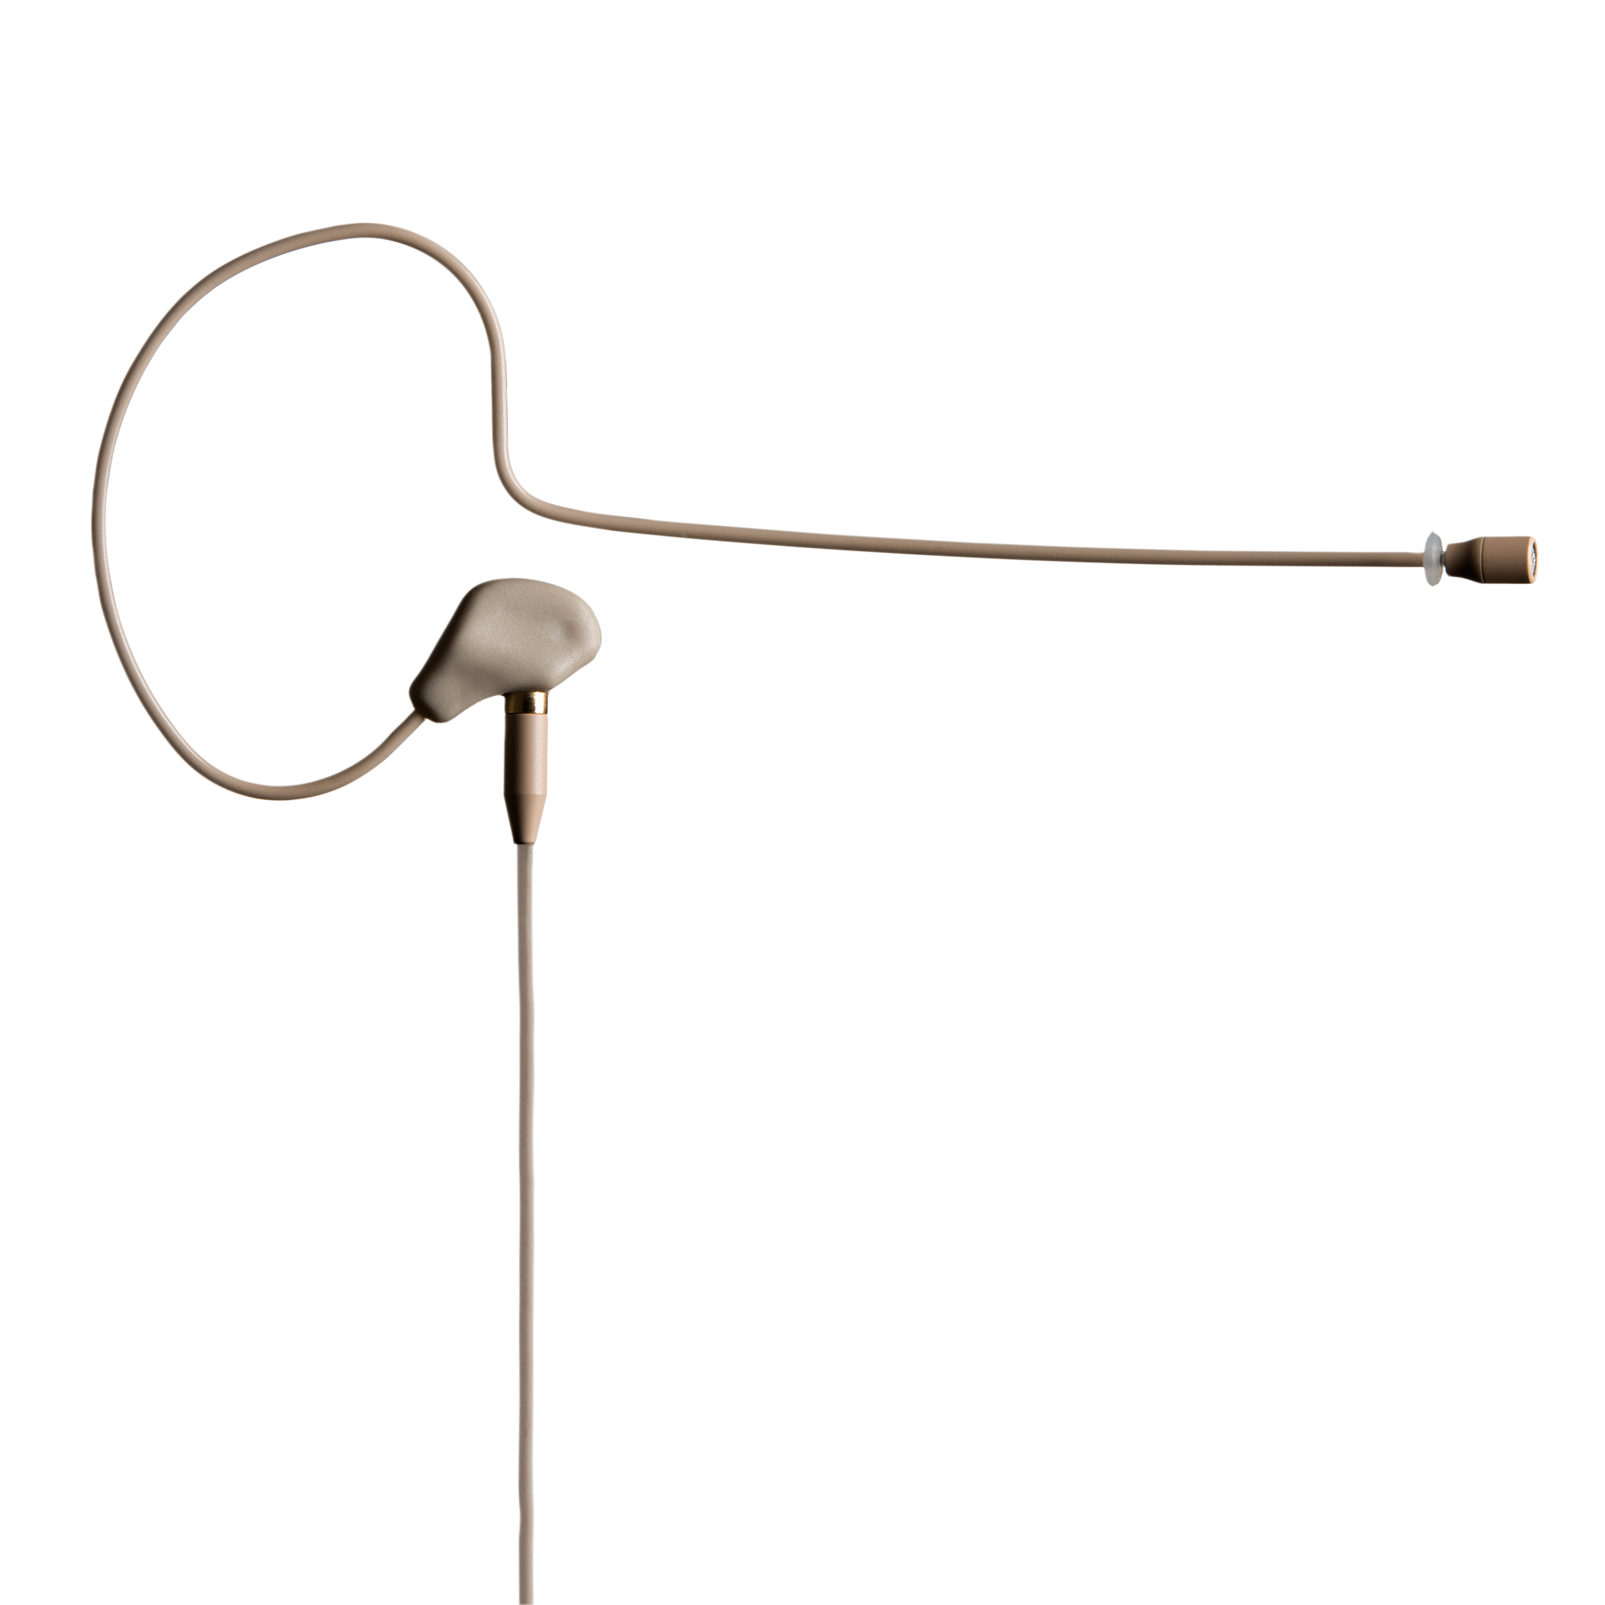 C111 LP - Beige - High-performance lightweight ear hook microphone - Hero